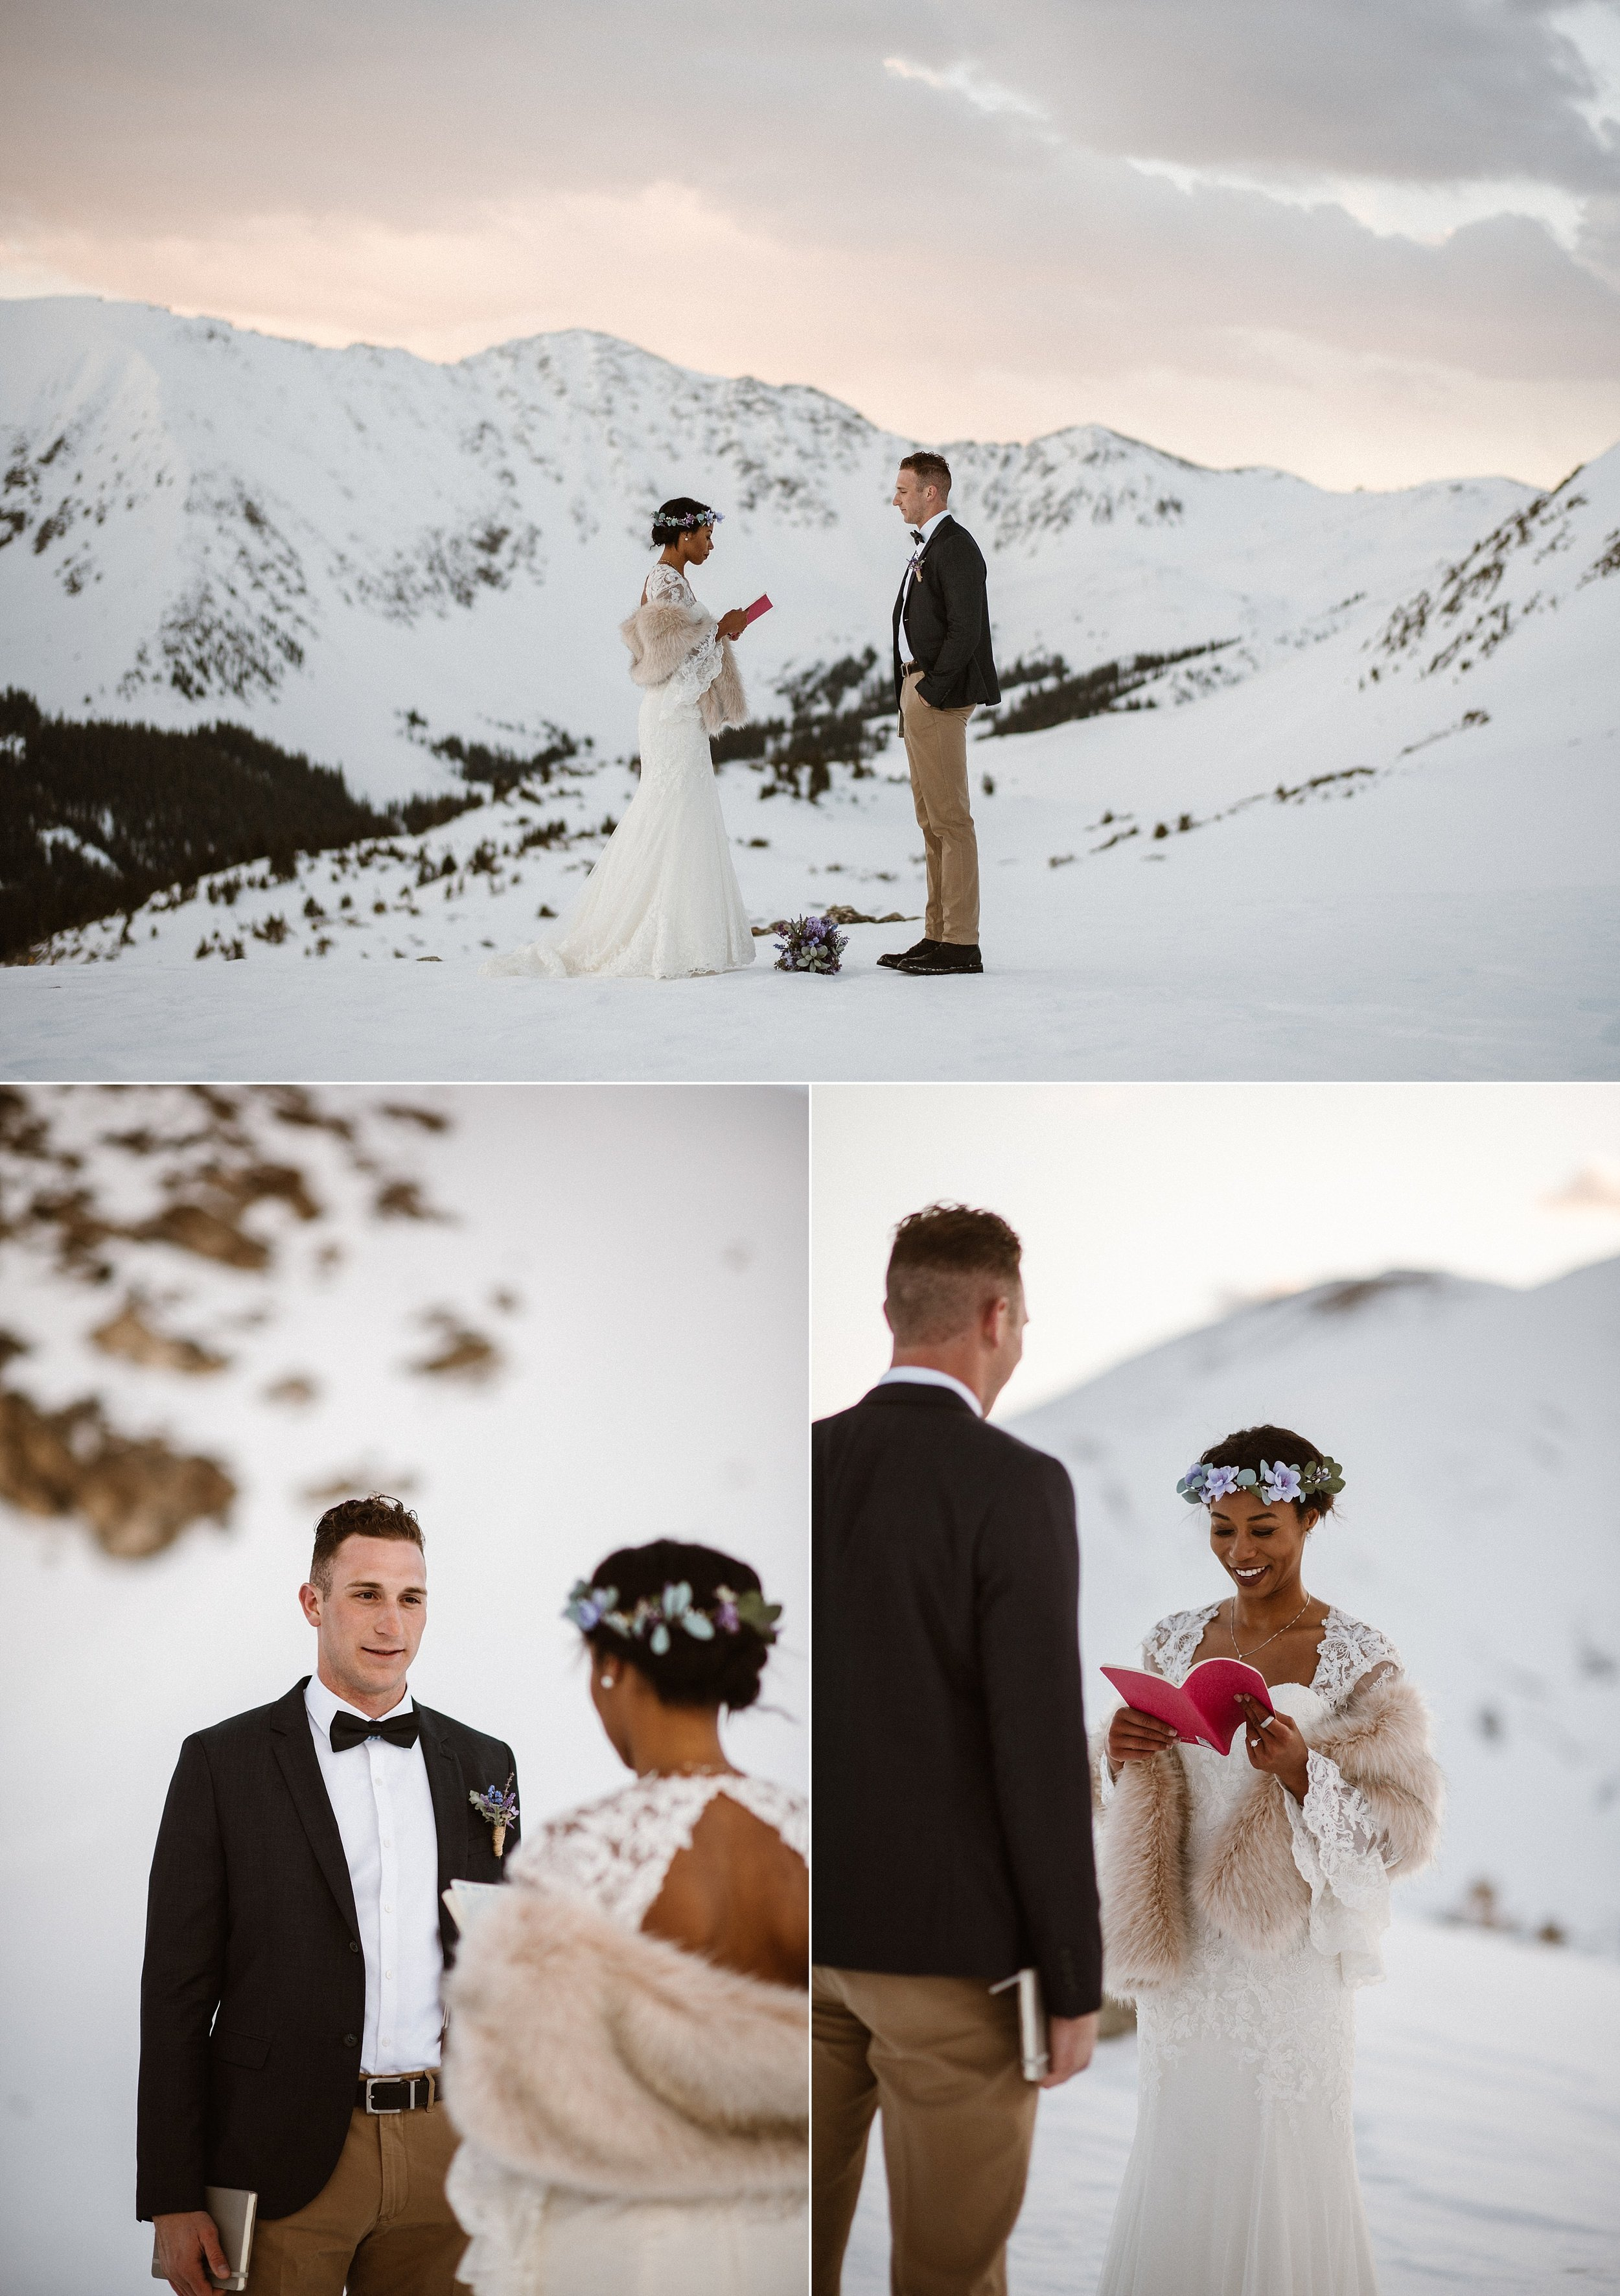 With pink sunrise skies and the cool white of the snow as their backdrop, Mikayla began her intimate wedding vows, personalized for Jared. Their snowy Loveland Pass elopement captured by their wedding photographer Maddie Mae.